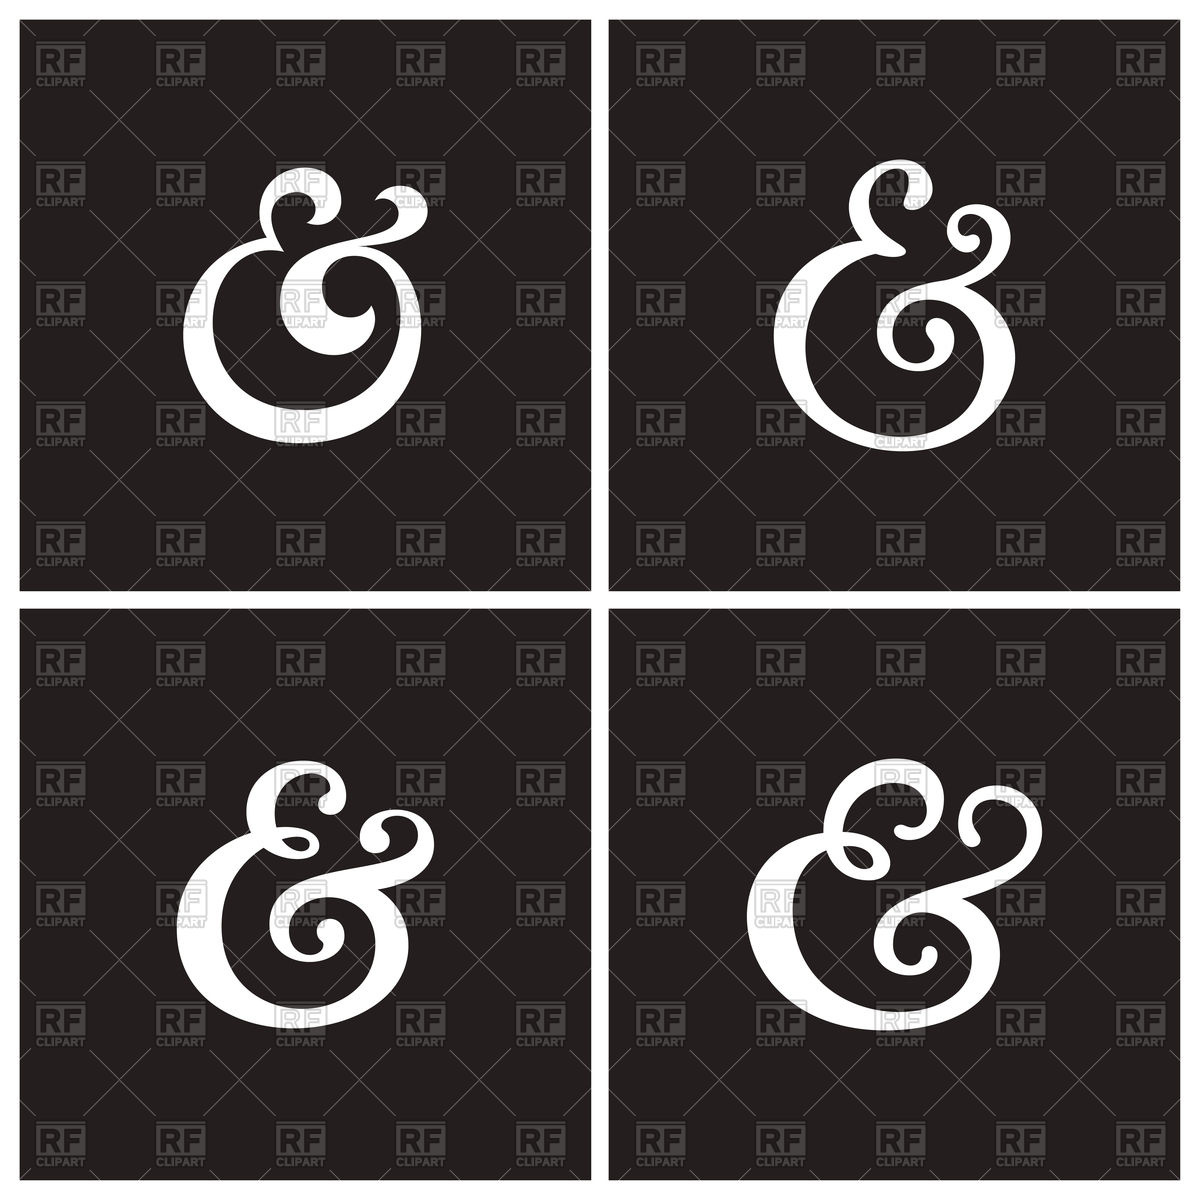 1200x1200 Collection Of Elegant Ampersand Vector Image Vector Artwork Of